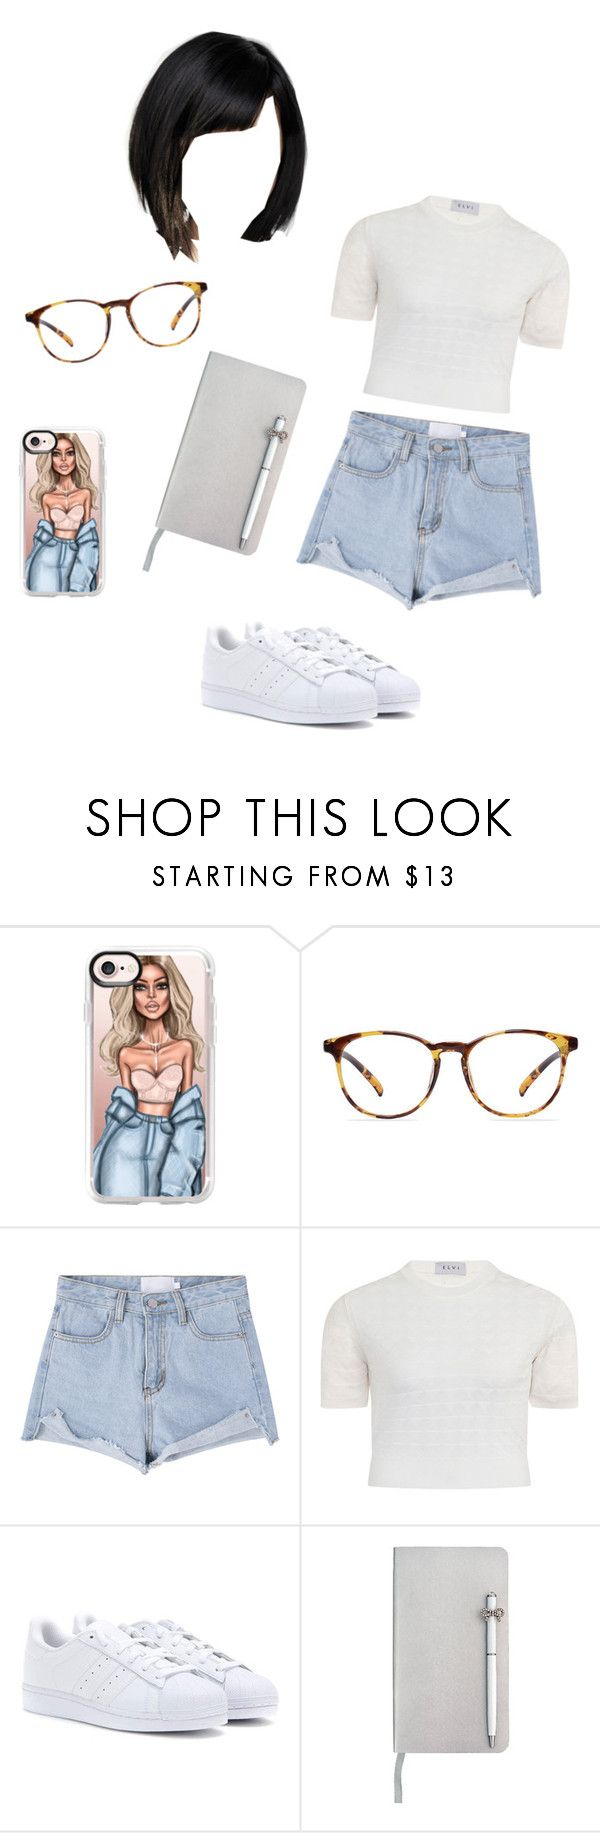 """Untitled #353"" by michelykamely ❤ liked on Polyvore featuring Casetify, Elvi, adidas and ICE London"